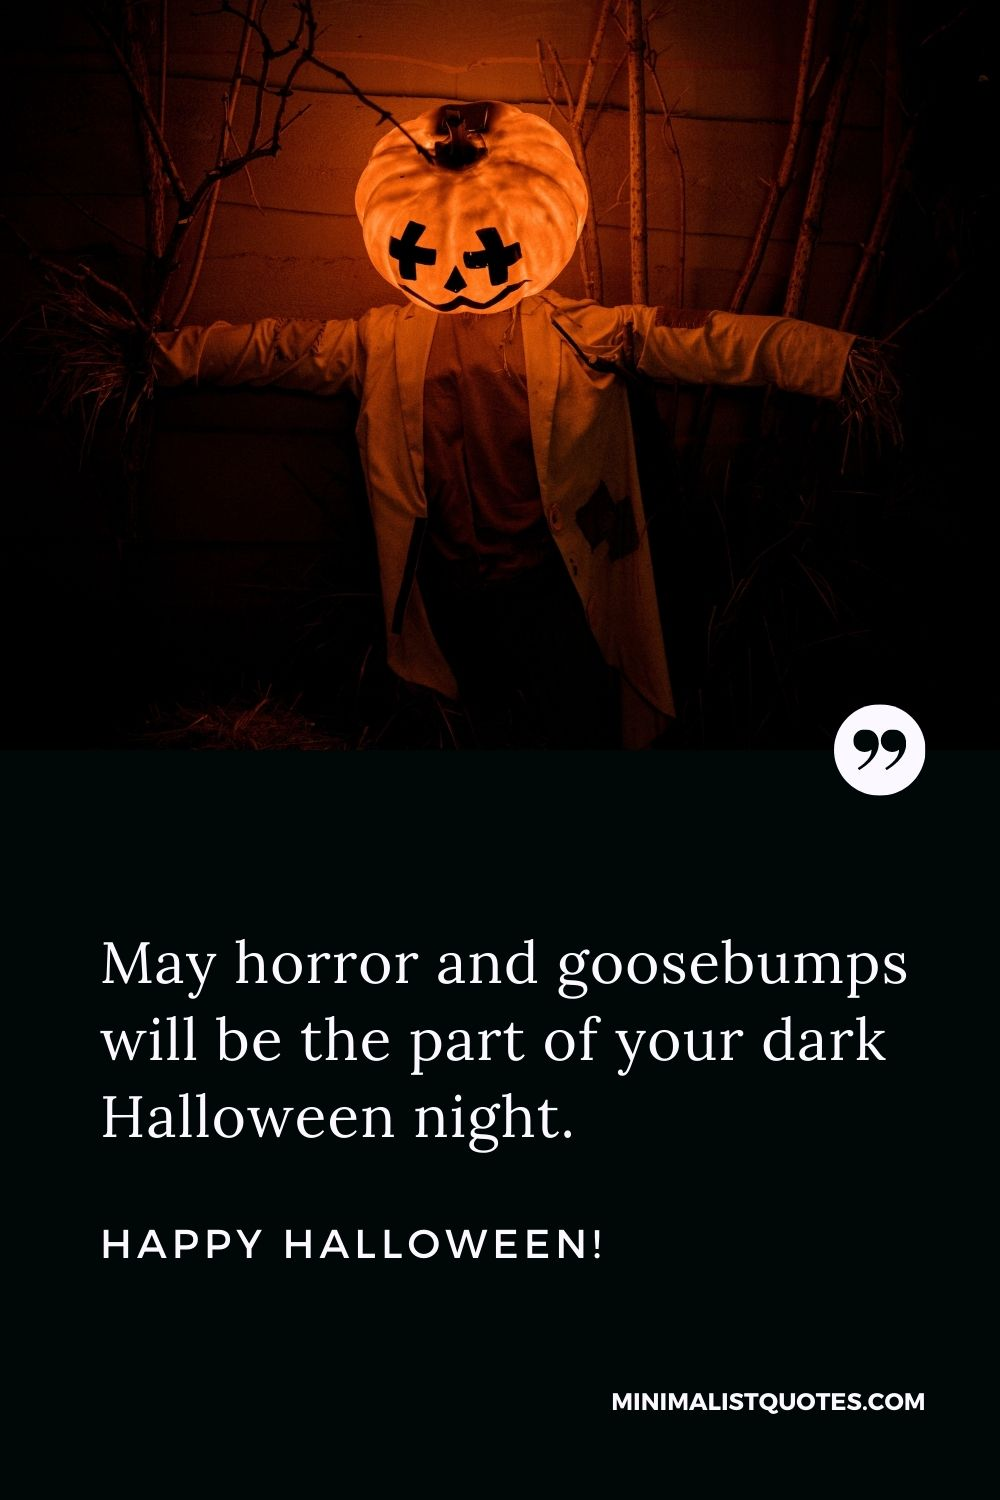 Happy Halloween Wishes - May horror and goosebumps will be the part of your dark Halloween night.